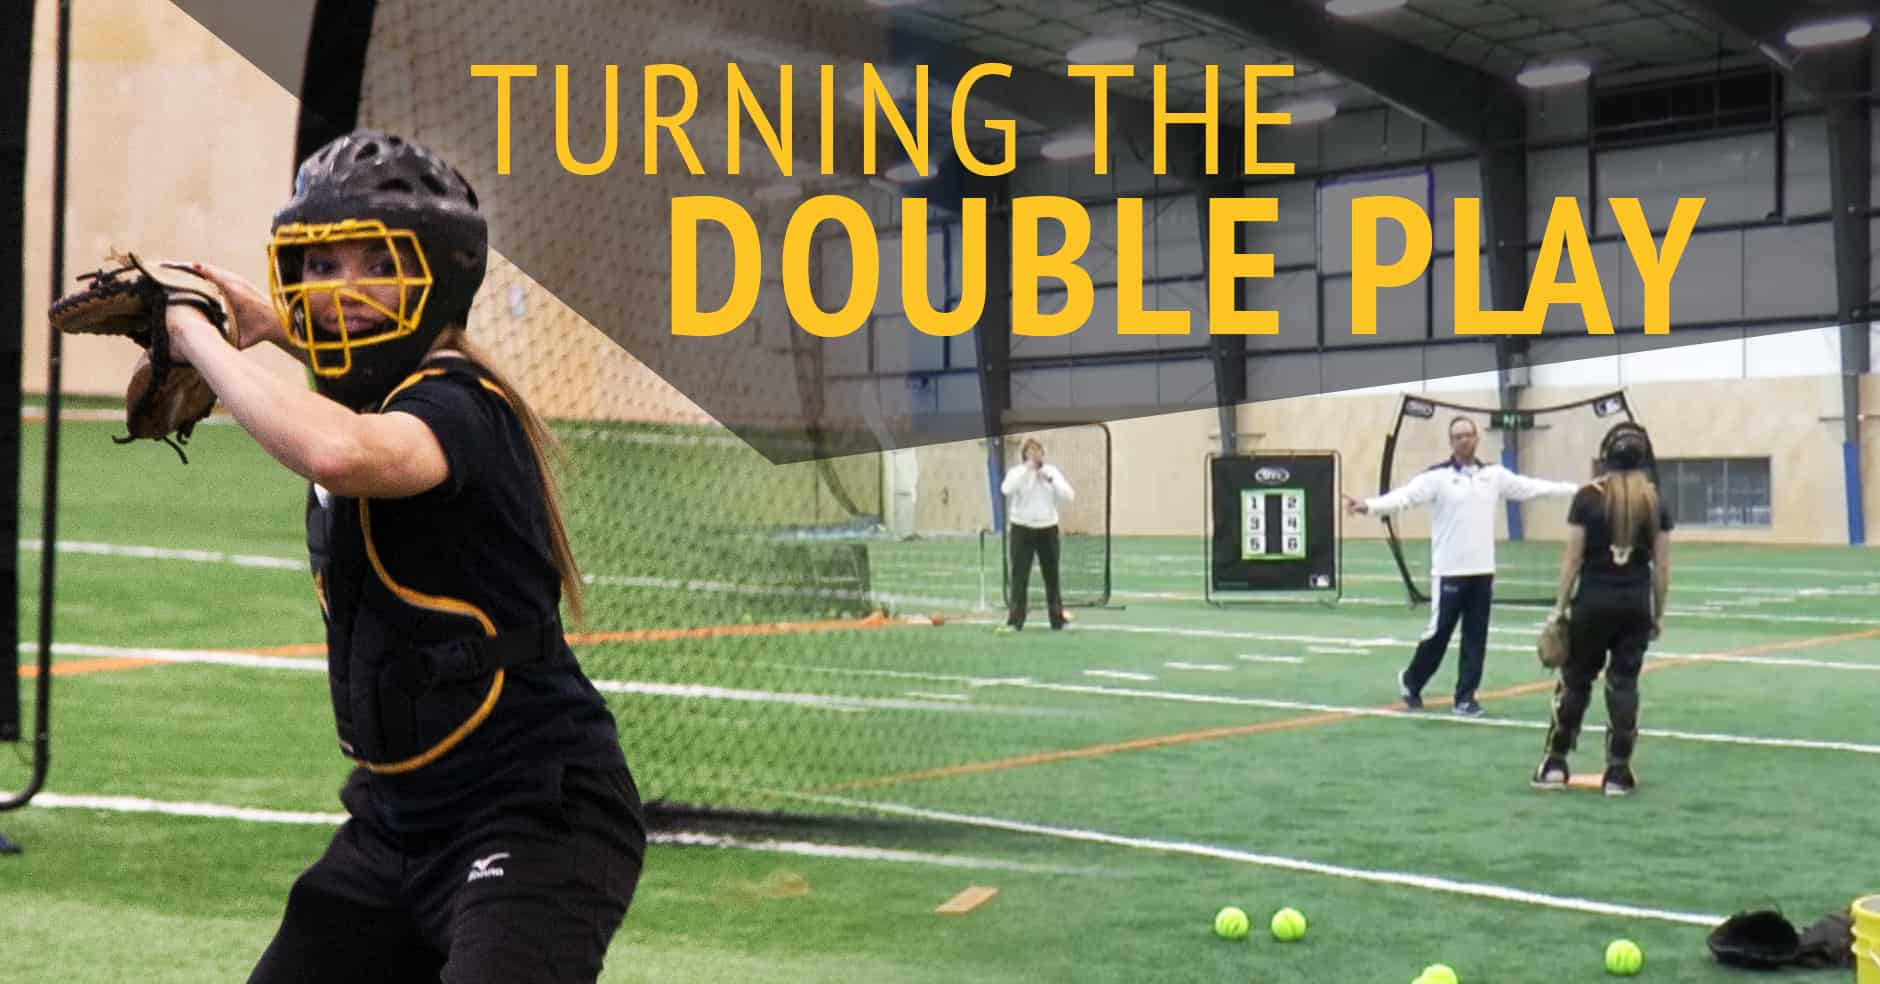 Catching Turning The Double Play